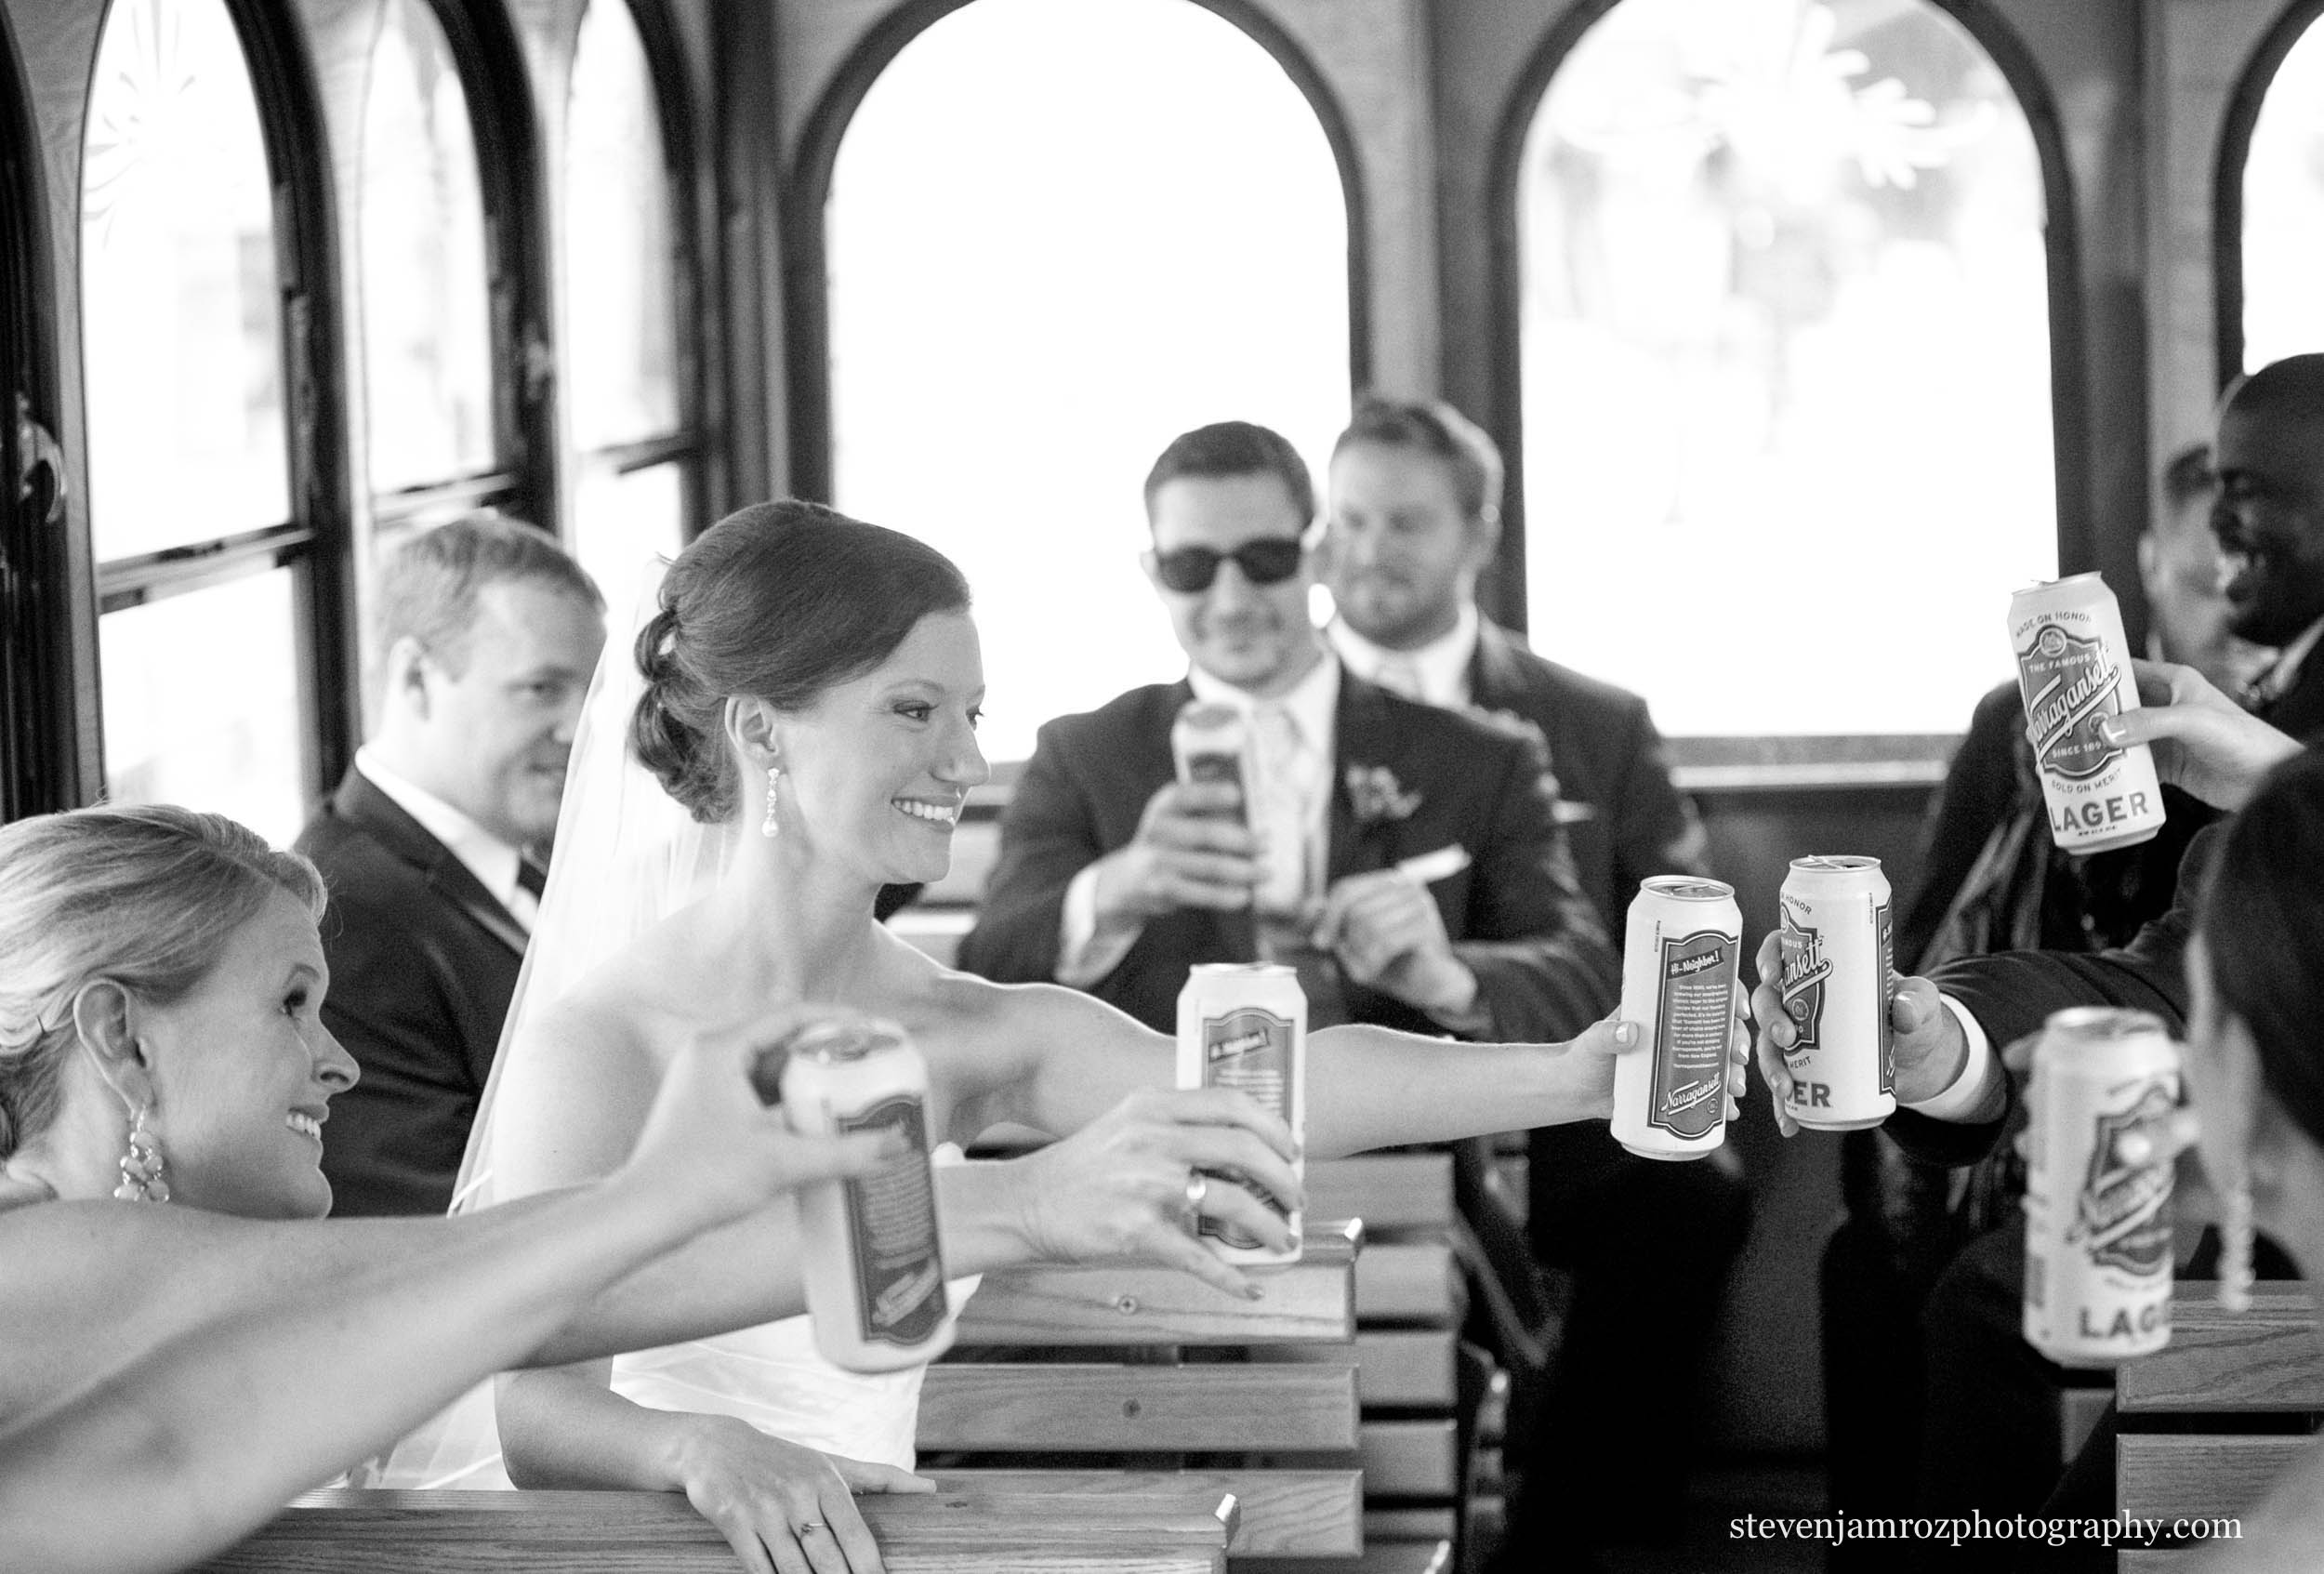 trolley-wedding-raleigh-steven-jamroz-photography-0335.jpg